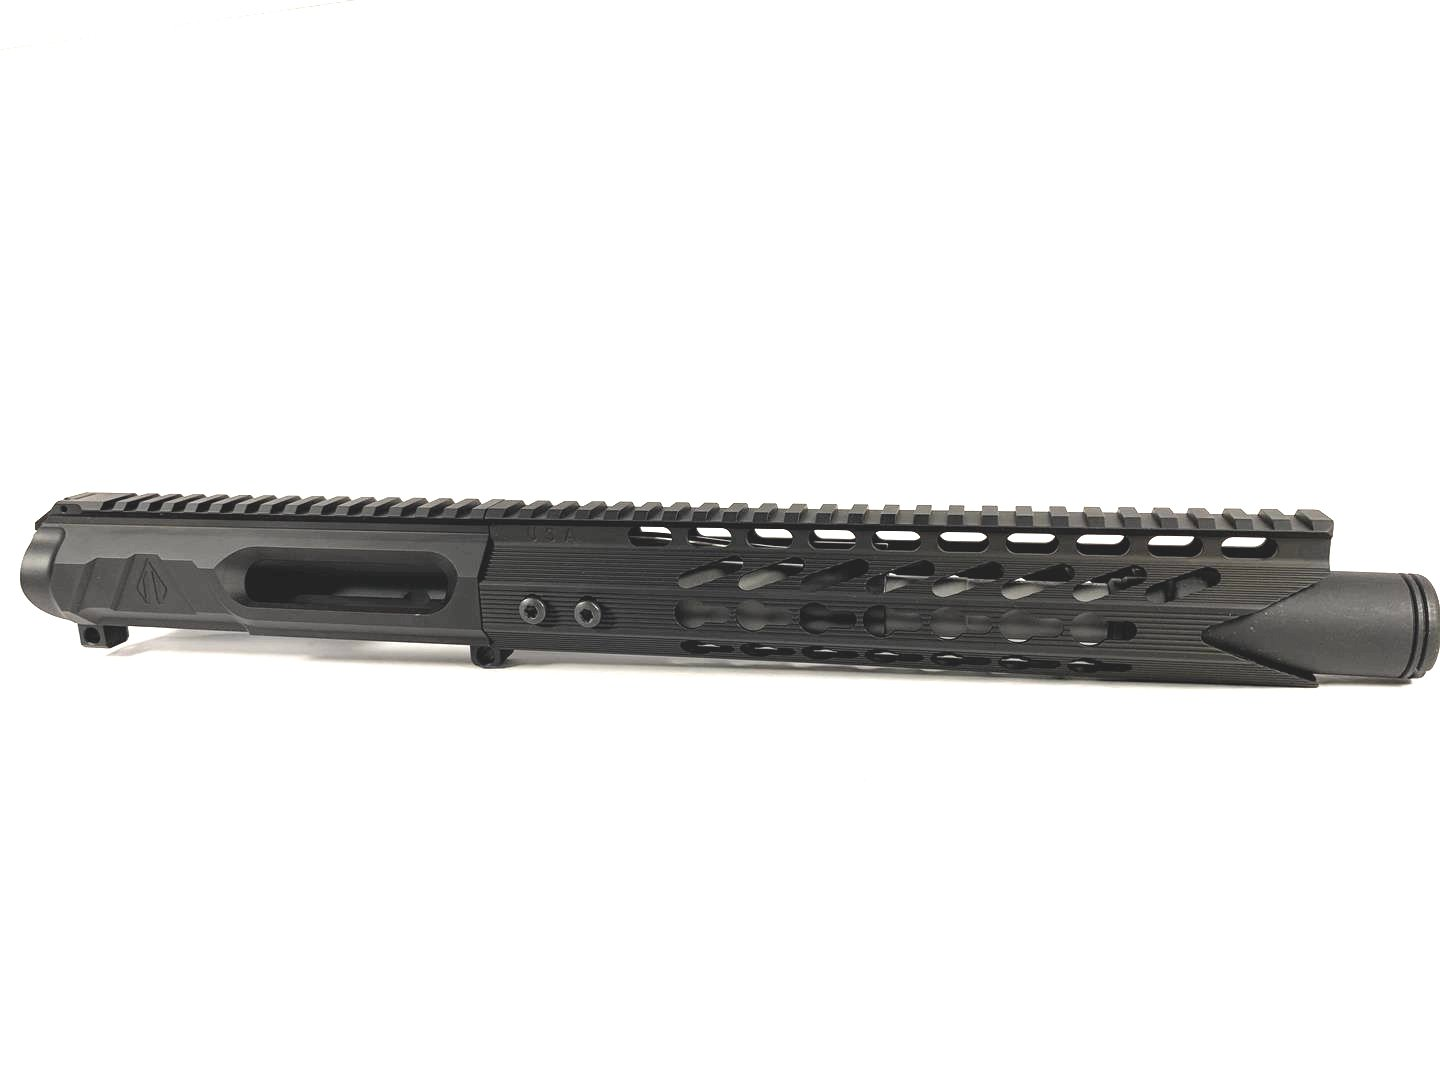 8 5 inch AR-15 Non Reciprocating Side Charging 9x39 Pistol Length Stainless  Upper w/Can - $449 99